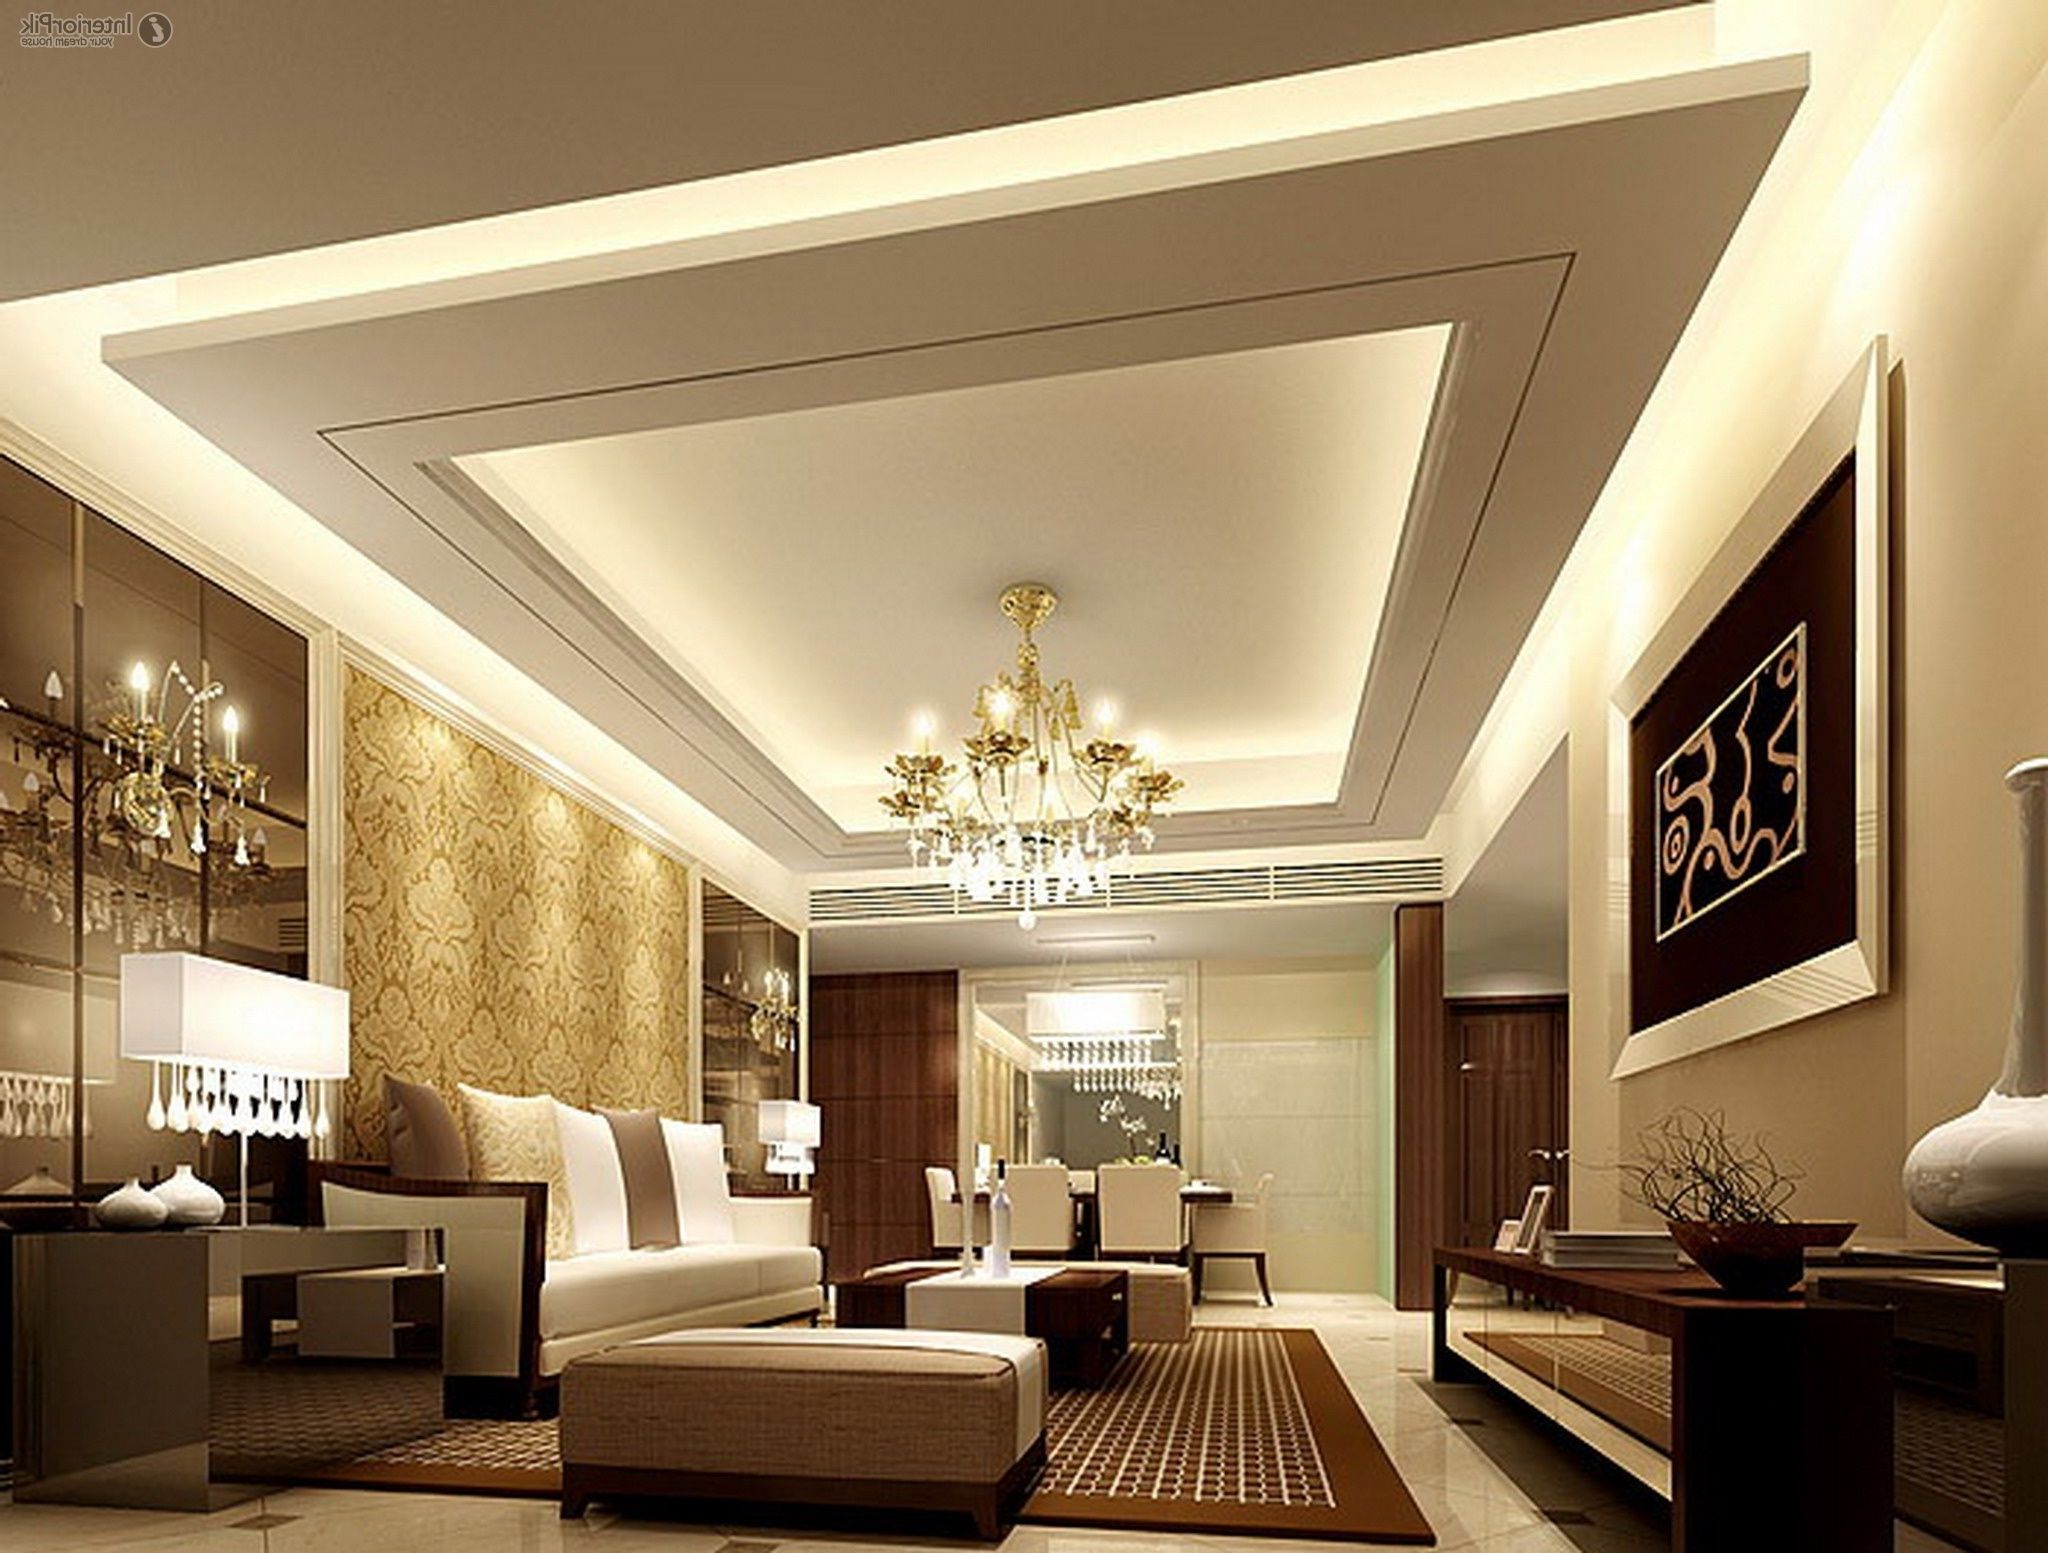 Of Interior Decoration Of Living Room 25 Best Ideas About Gypsum Ceiling On Pinterest False Ceiling